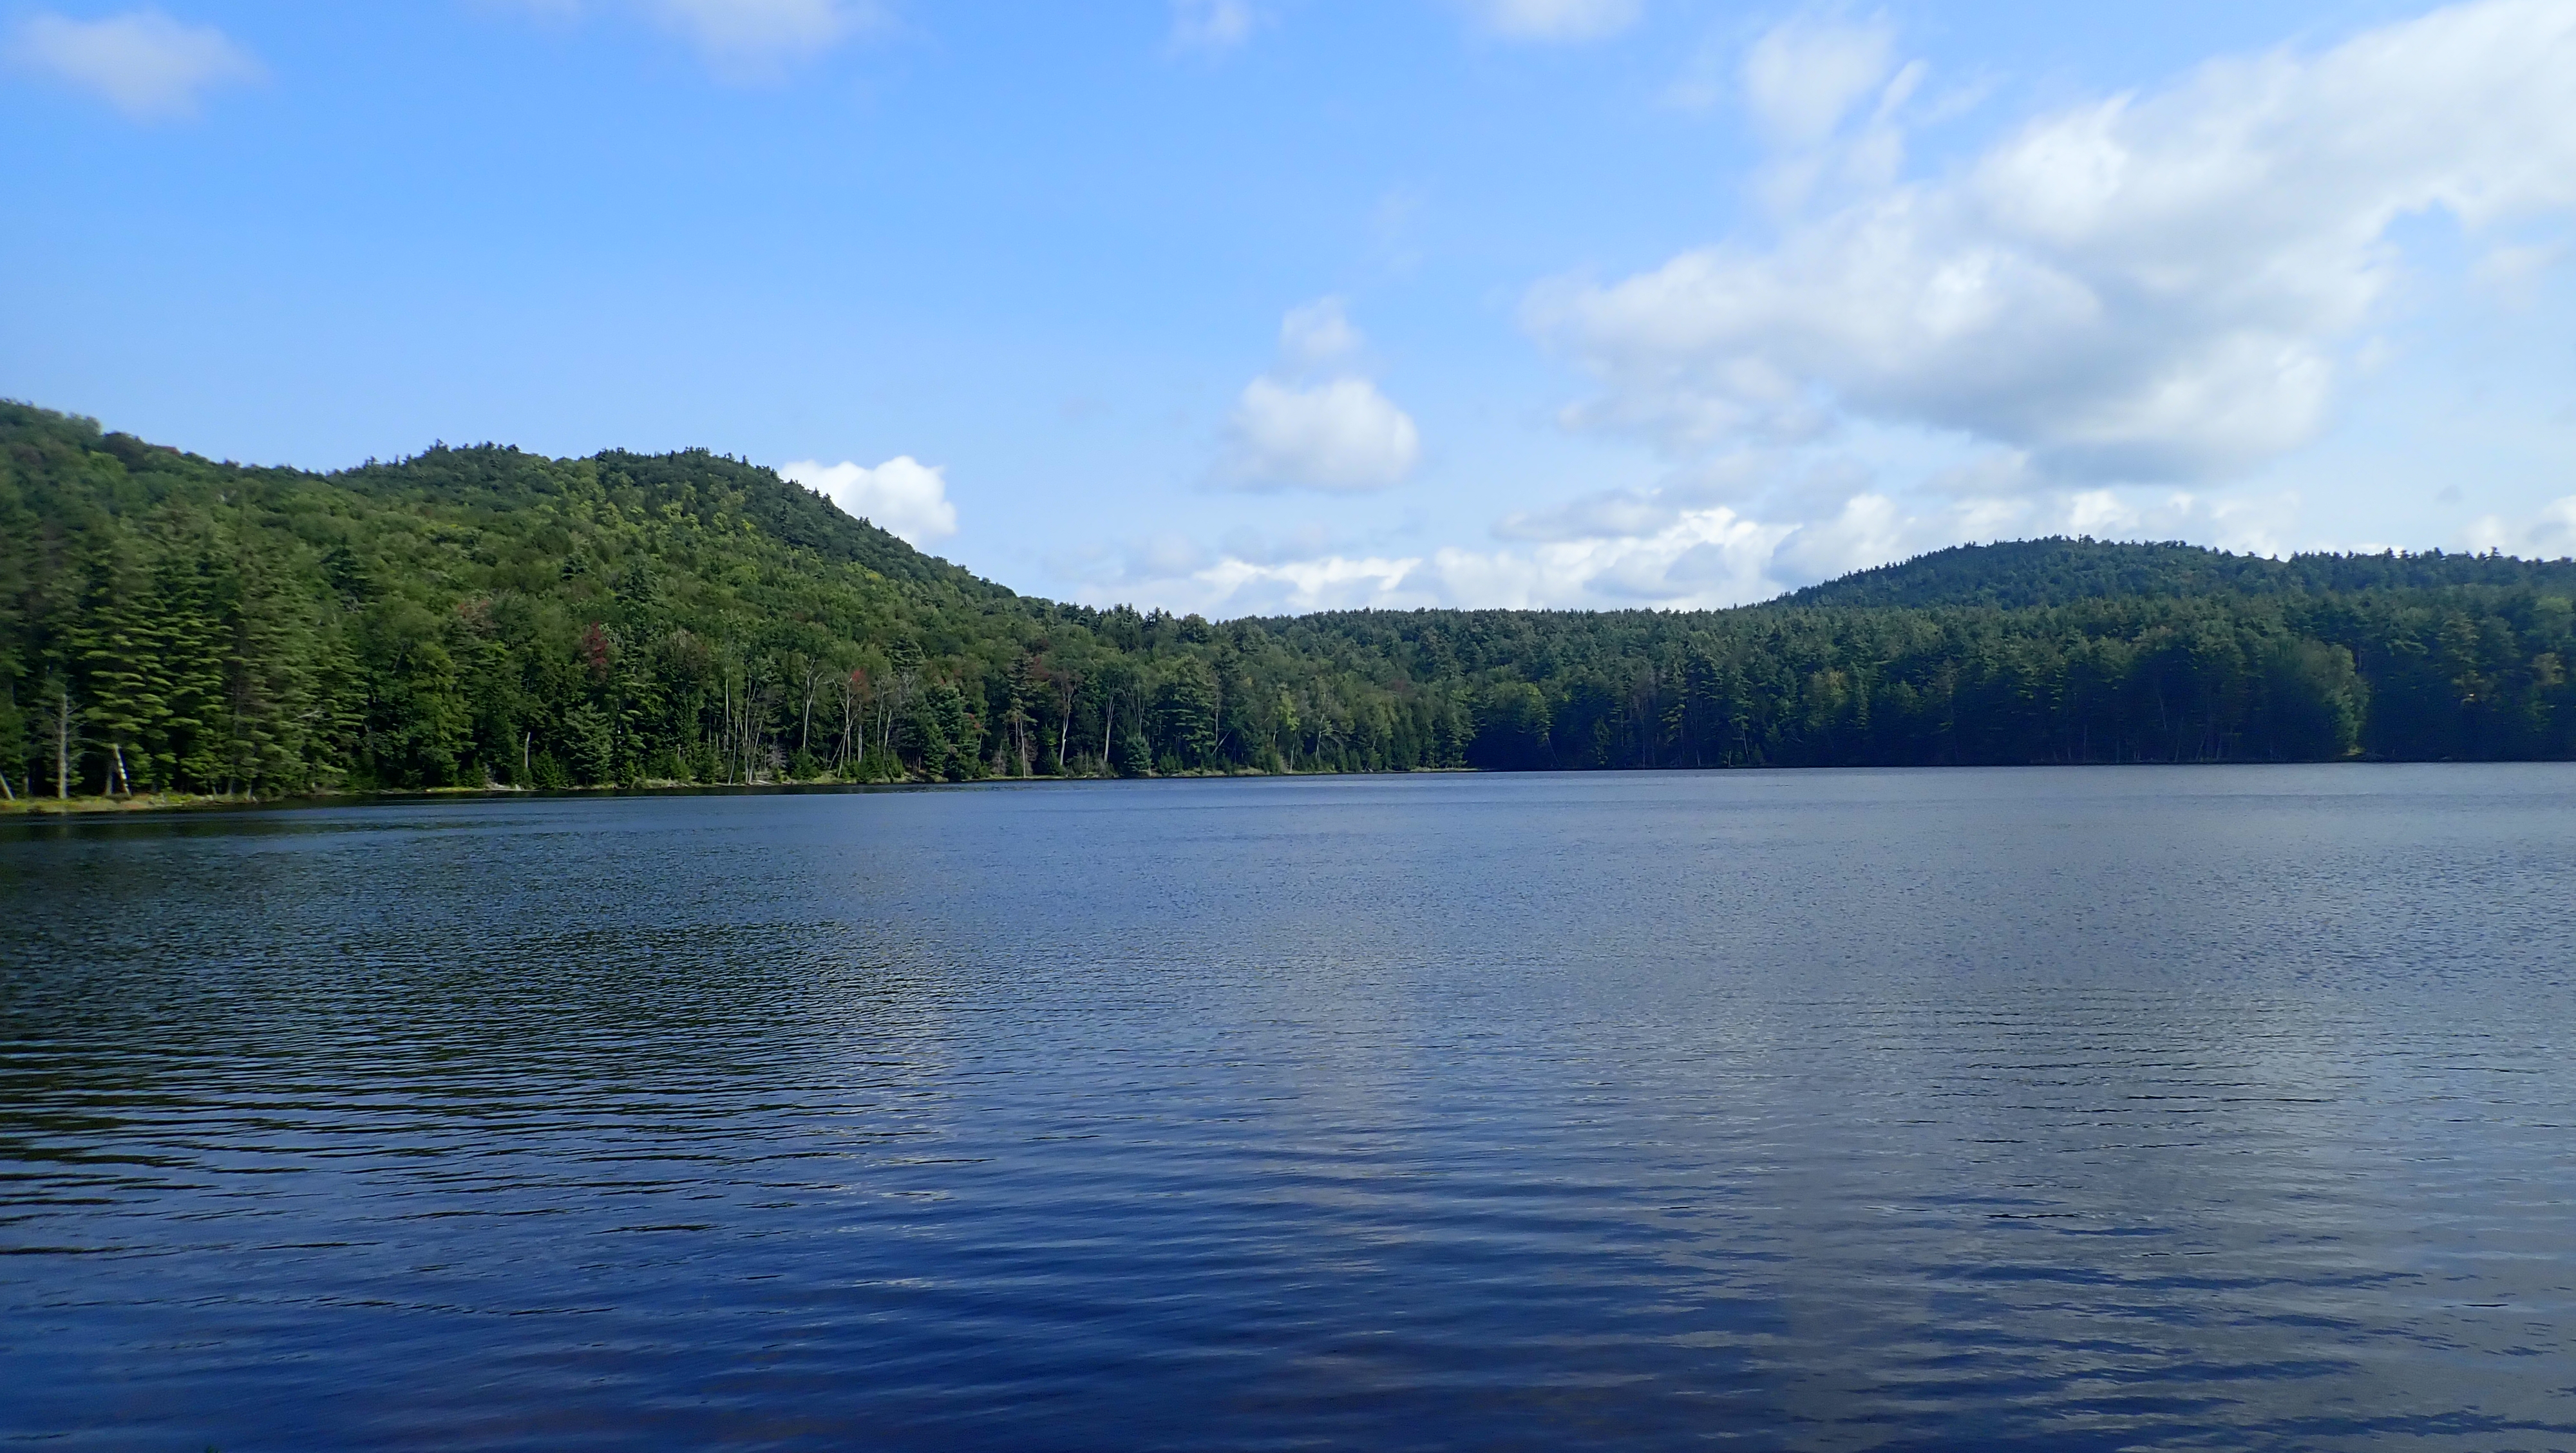 Edgecomb Pond